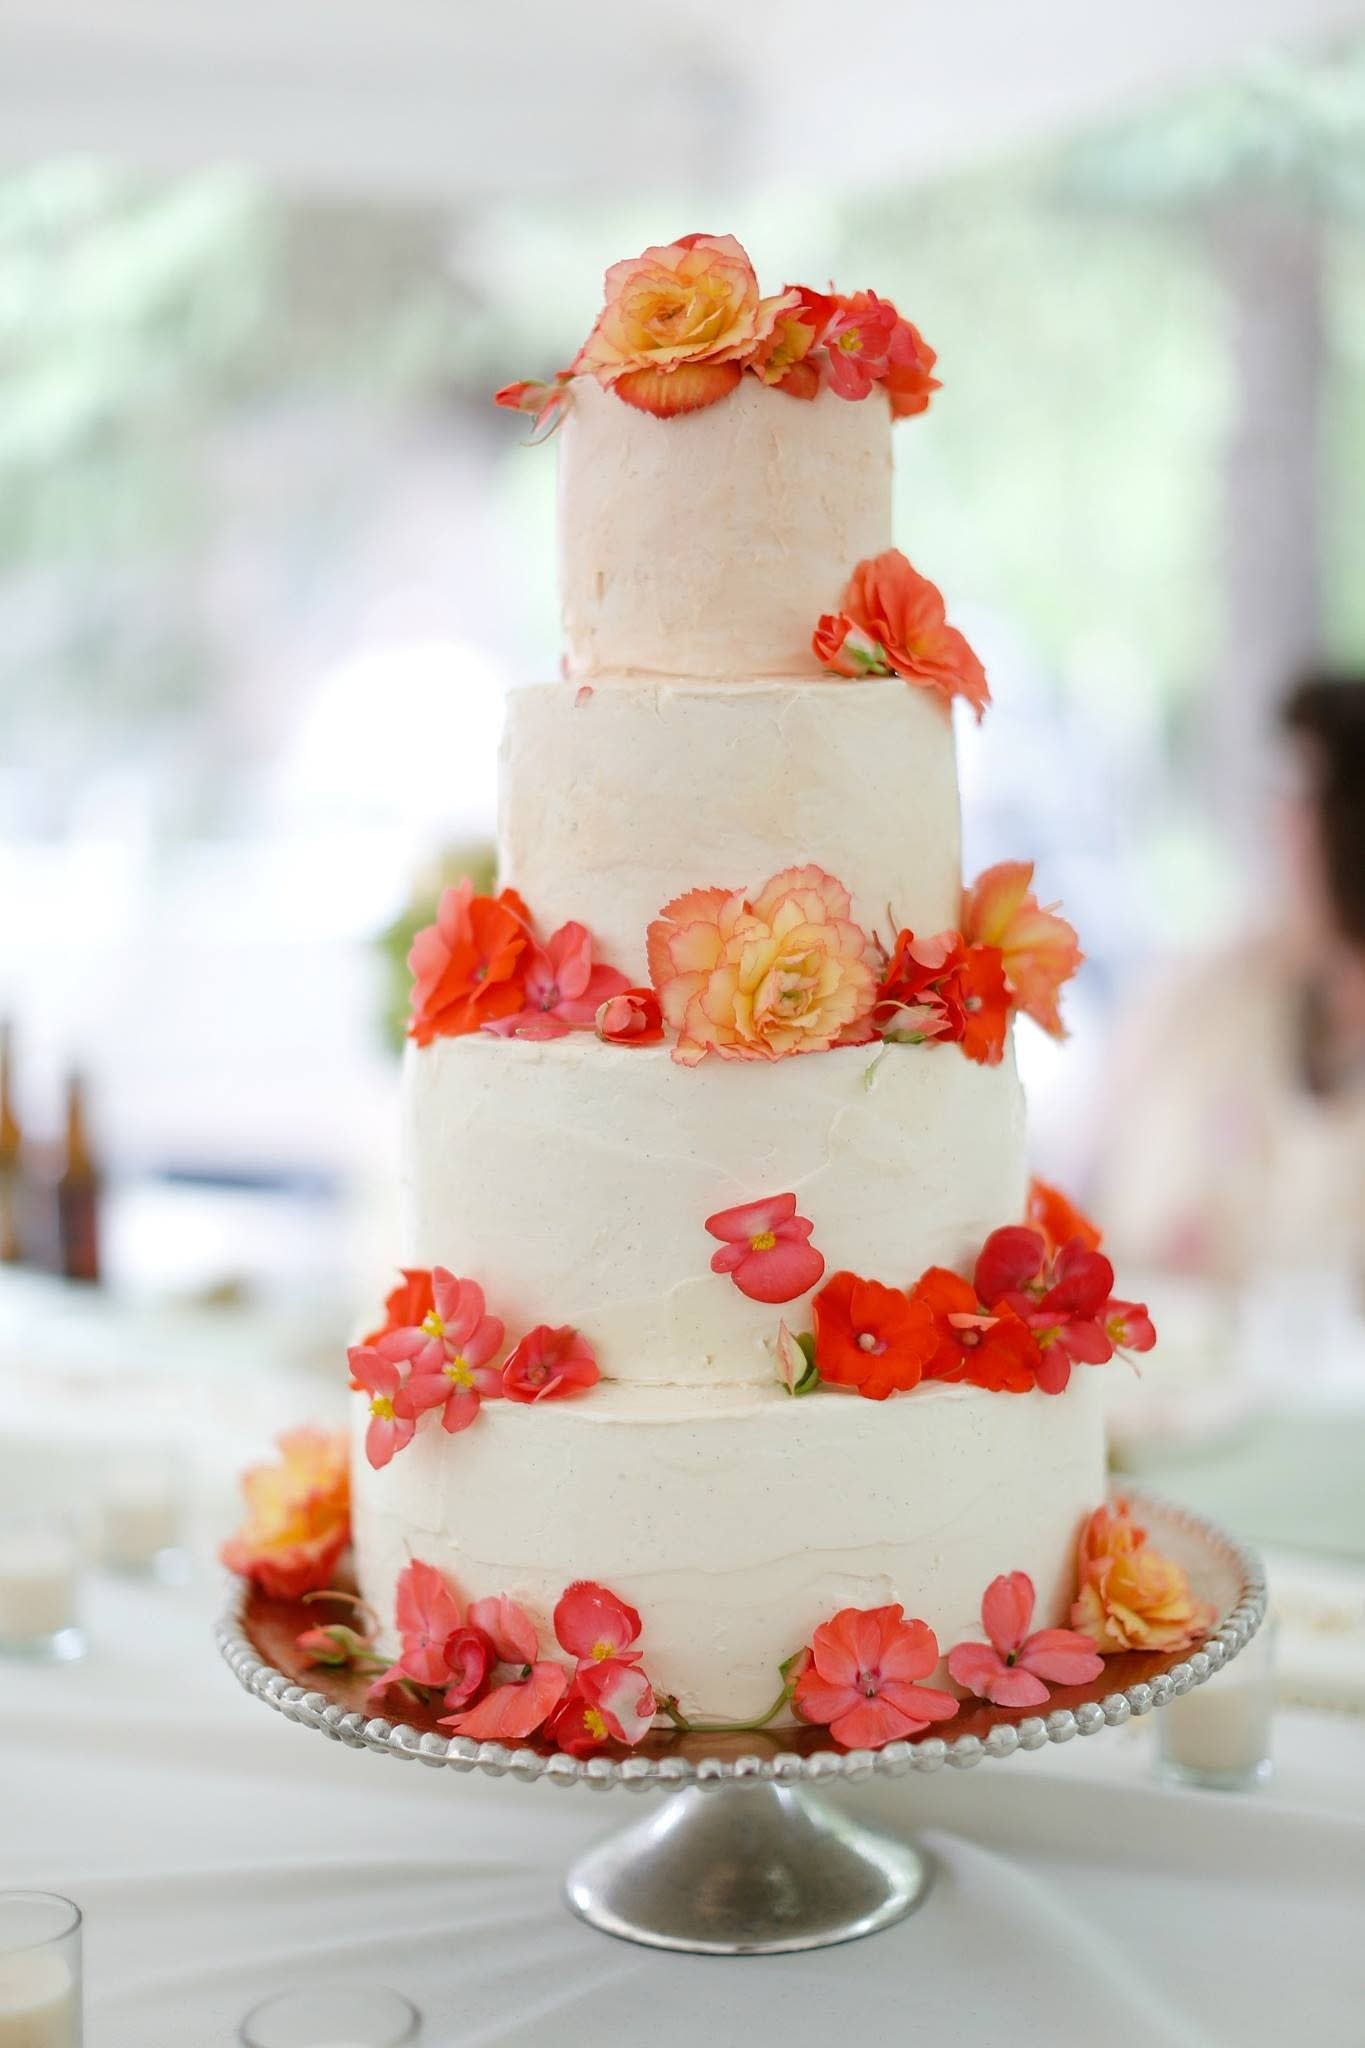 A wedding cake made by Thielen for friends Cara and Eddie.